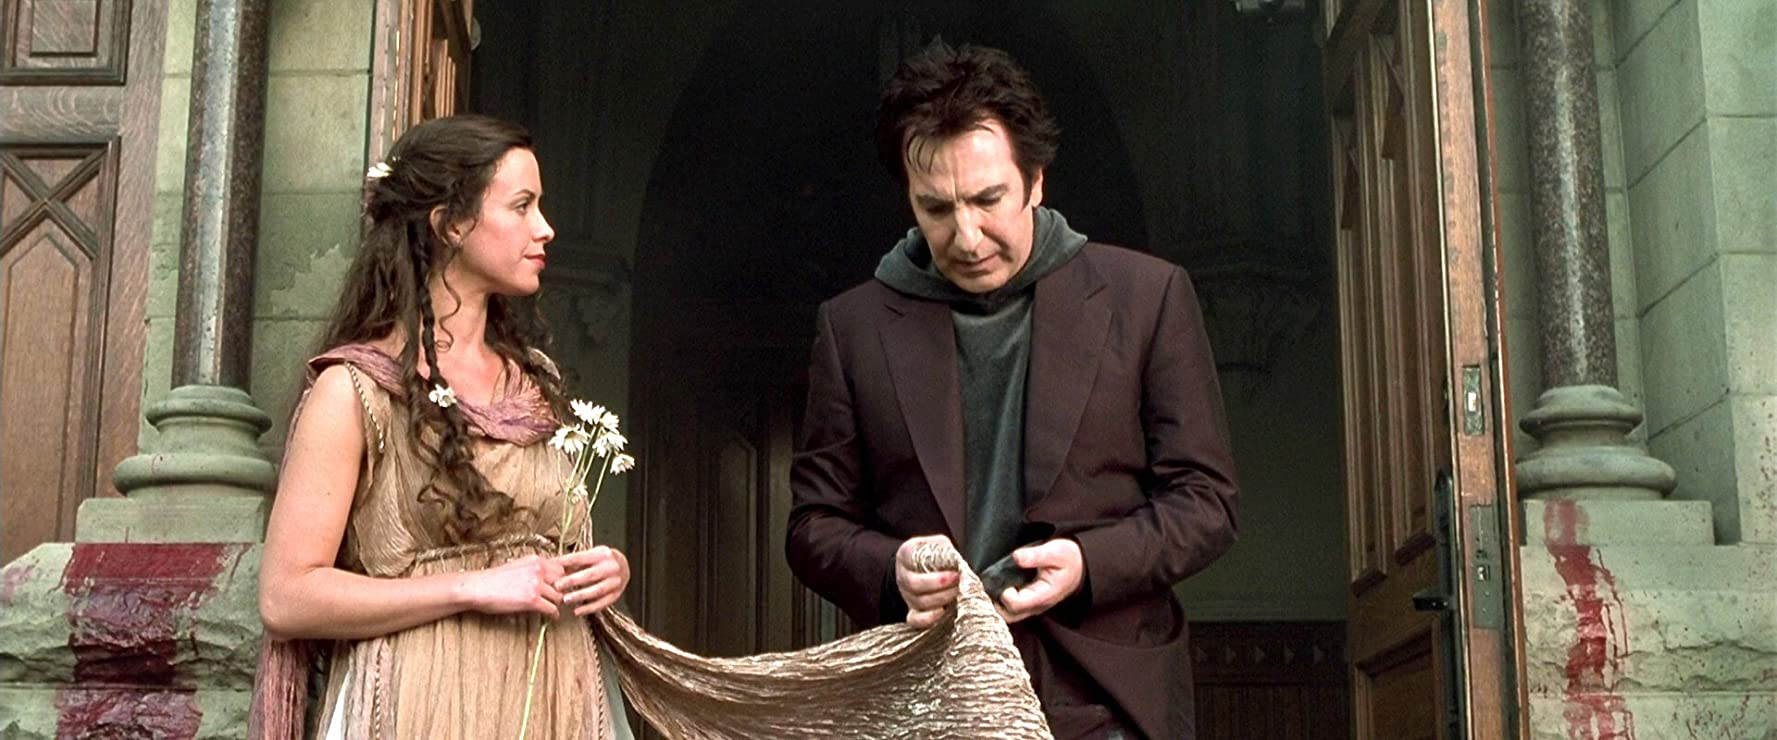 Alan Rickman and Alanis Morissette in Dogma (1999)